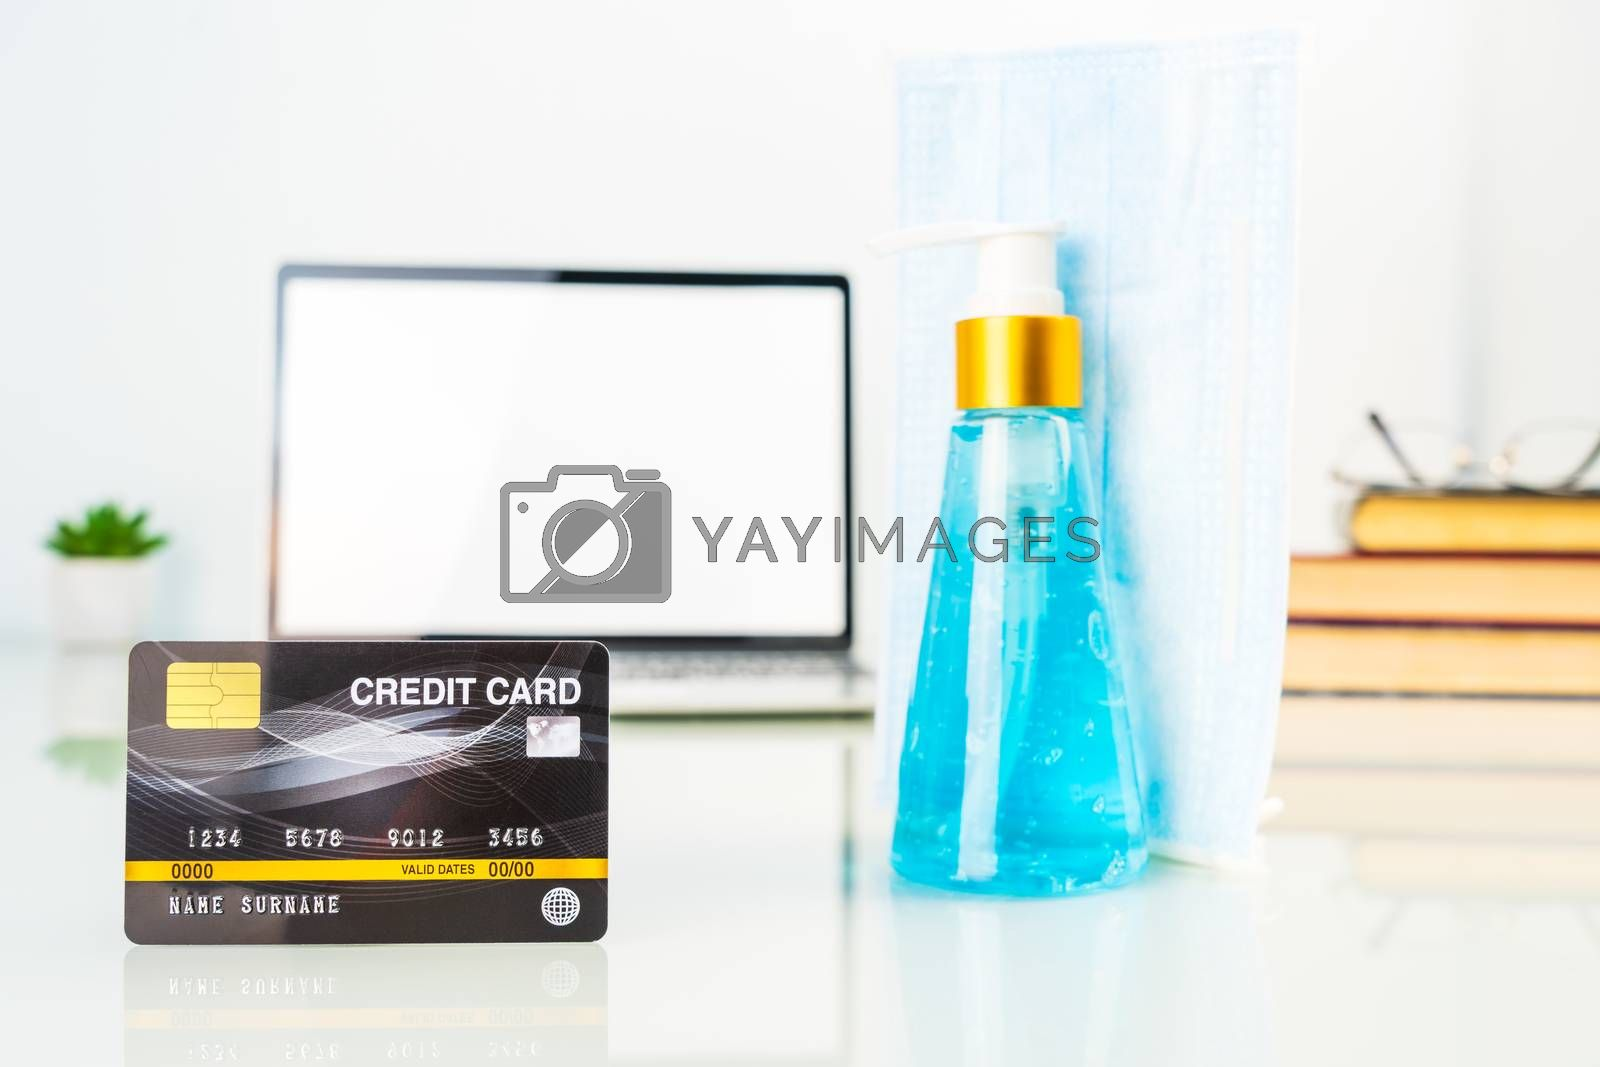 Online shopping, credit card front of laptop screen with hand sanitizer and surgical mask, Quarantine work from home concept against covid-19 epidemic